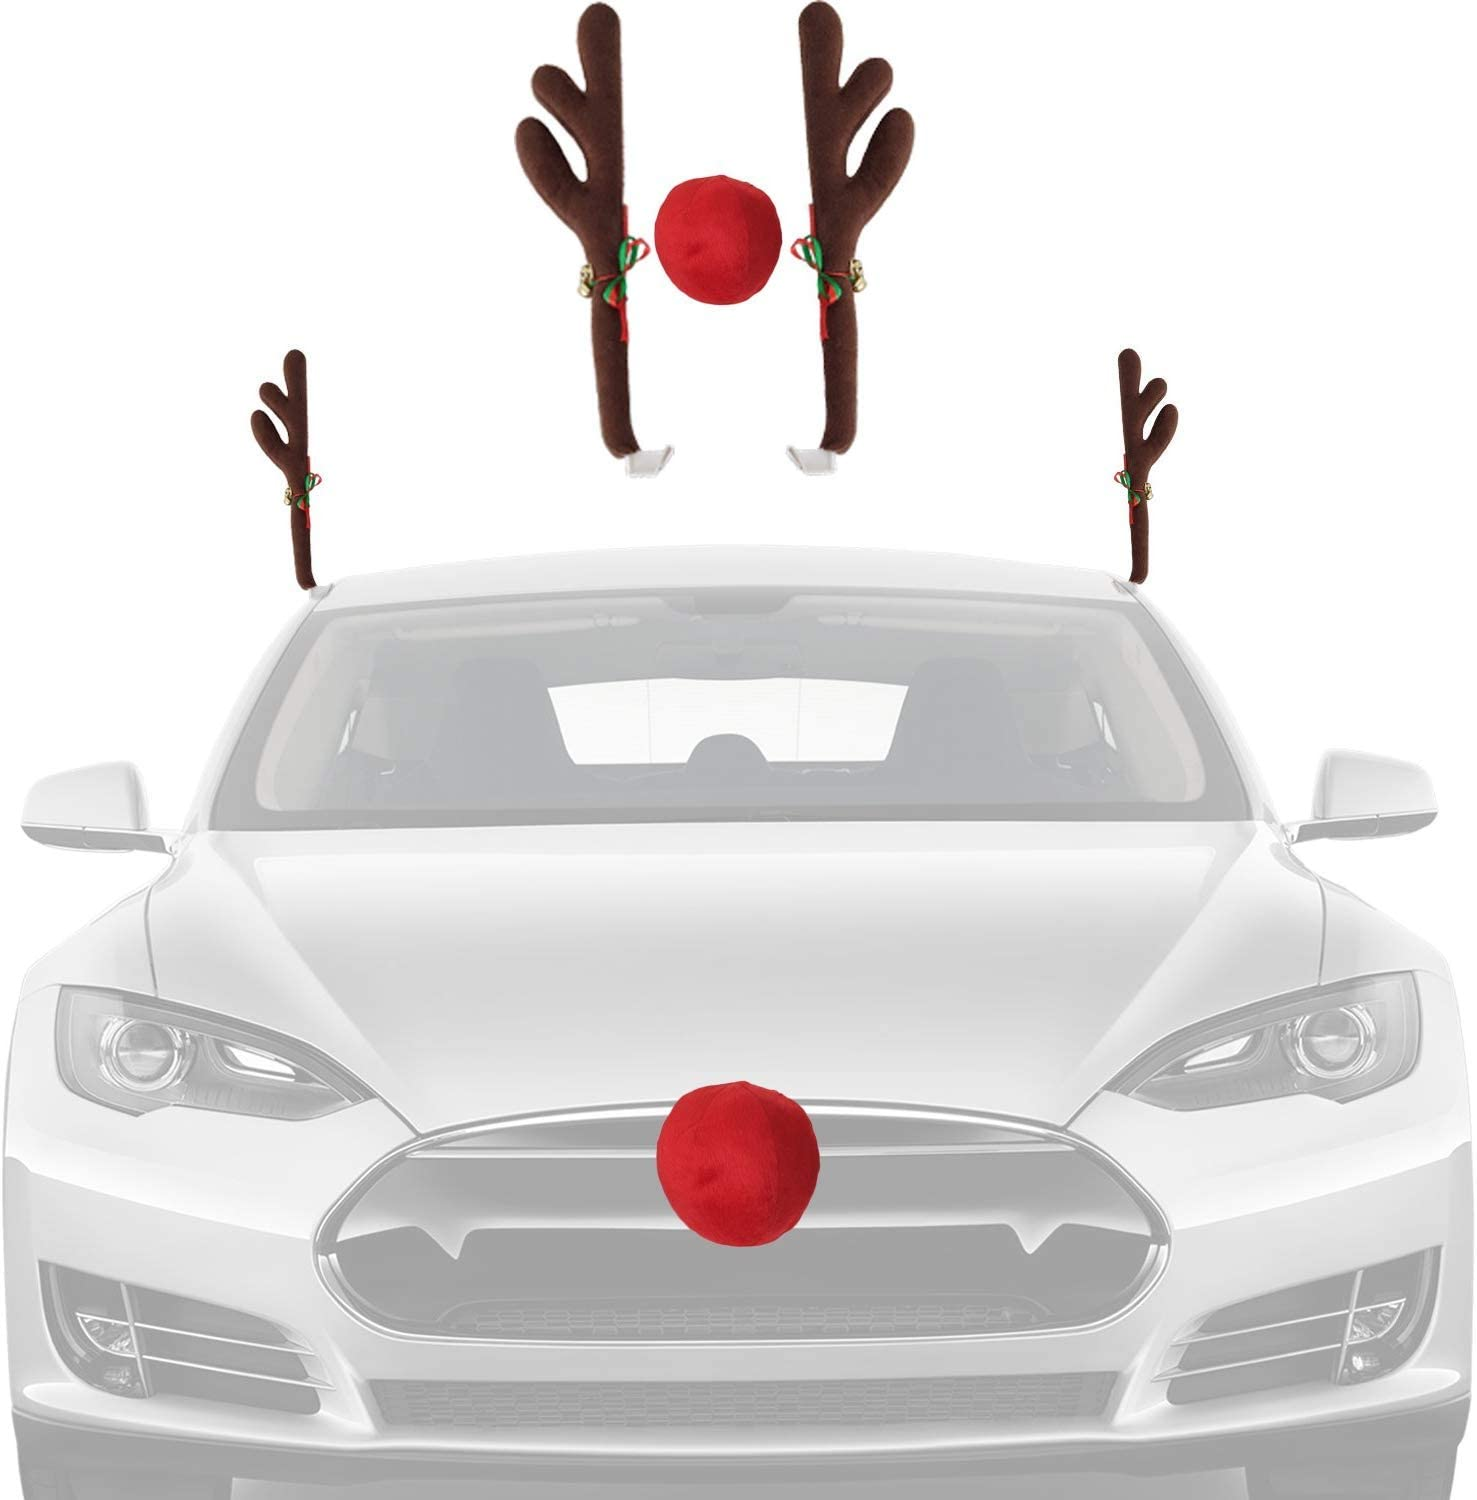 Christmas Car Decorations Reindeer Kit – Holiday Car Window Decor Rooftop Antlers and Auto Grill Red Nose Decor for Car